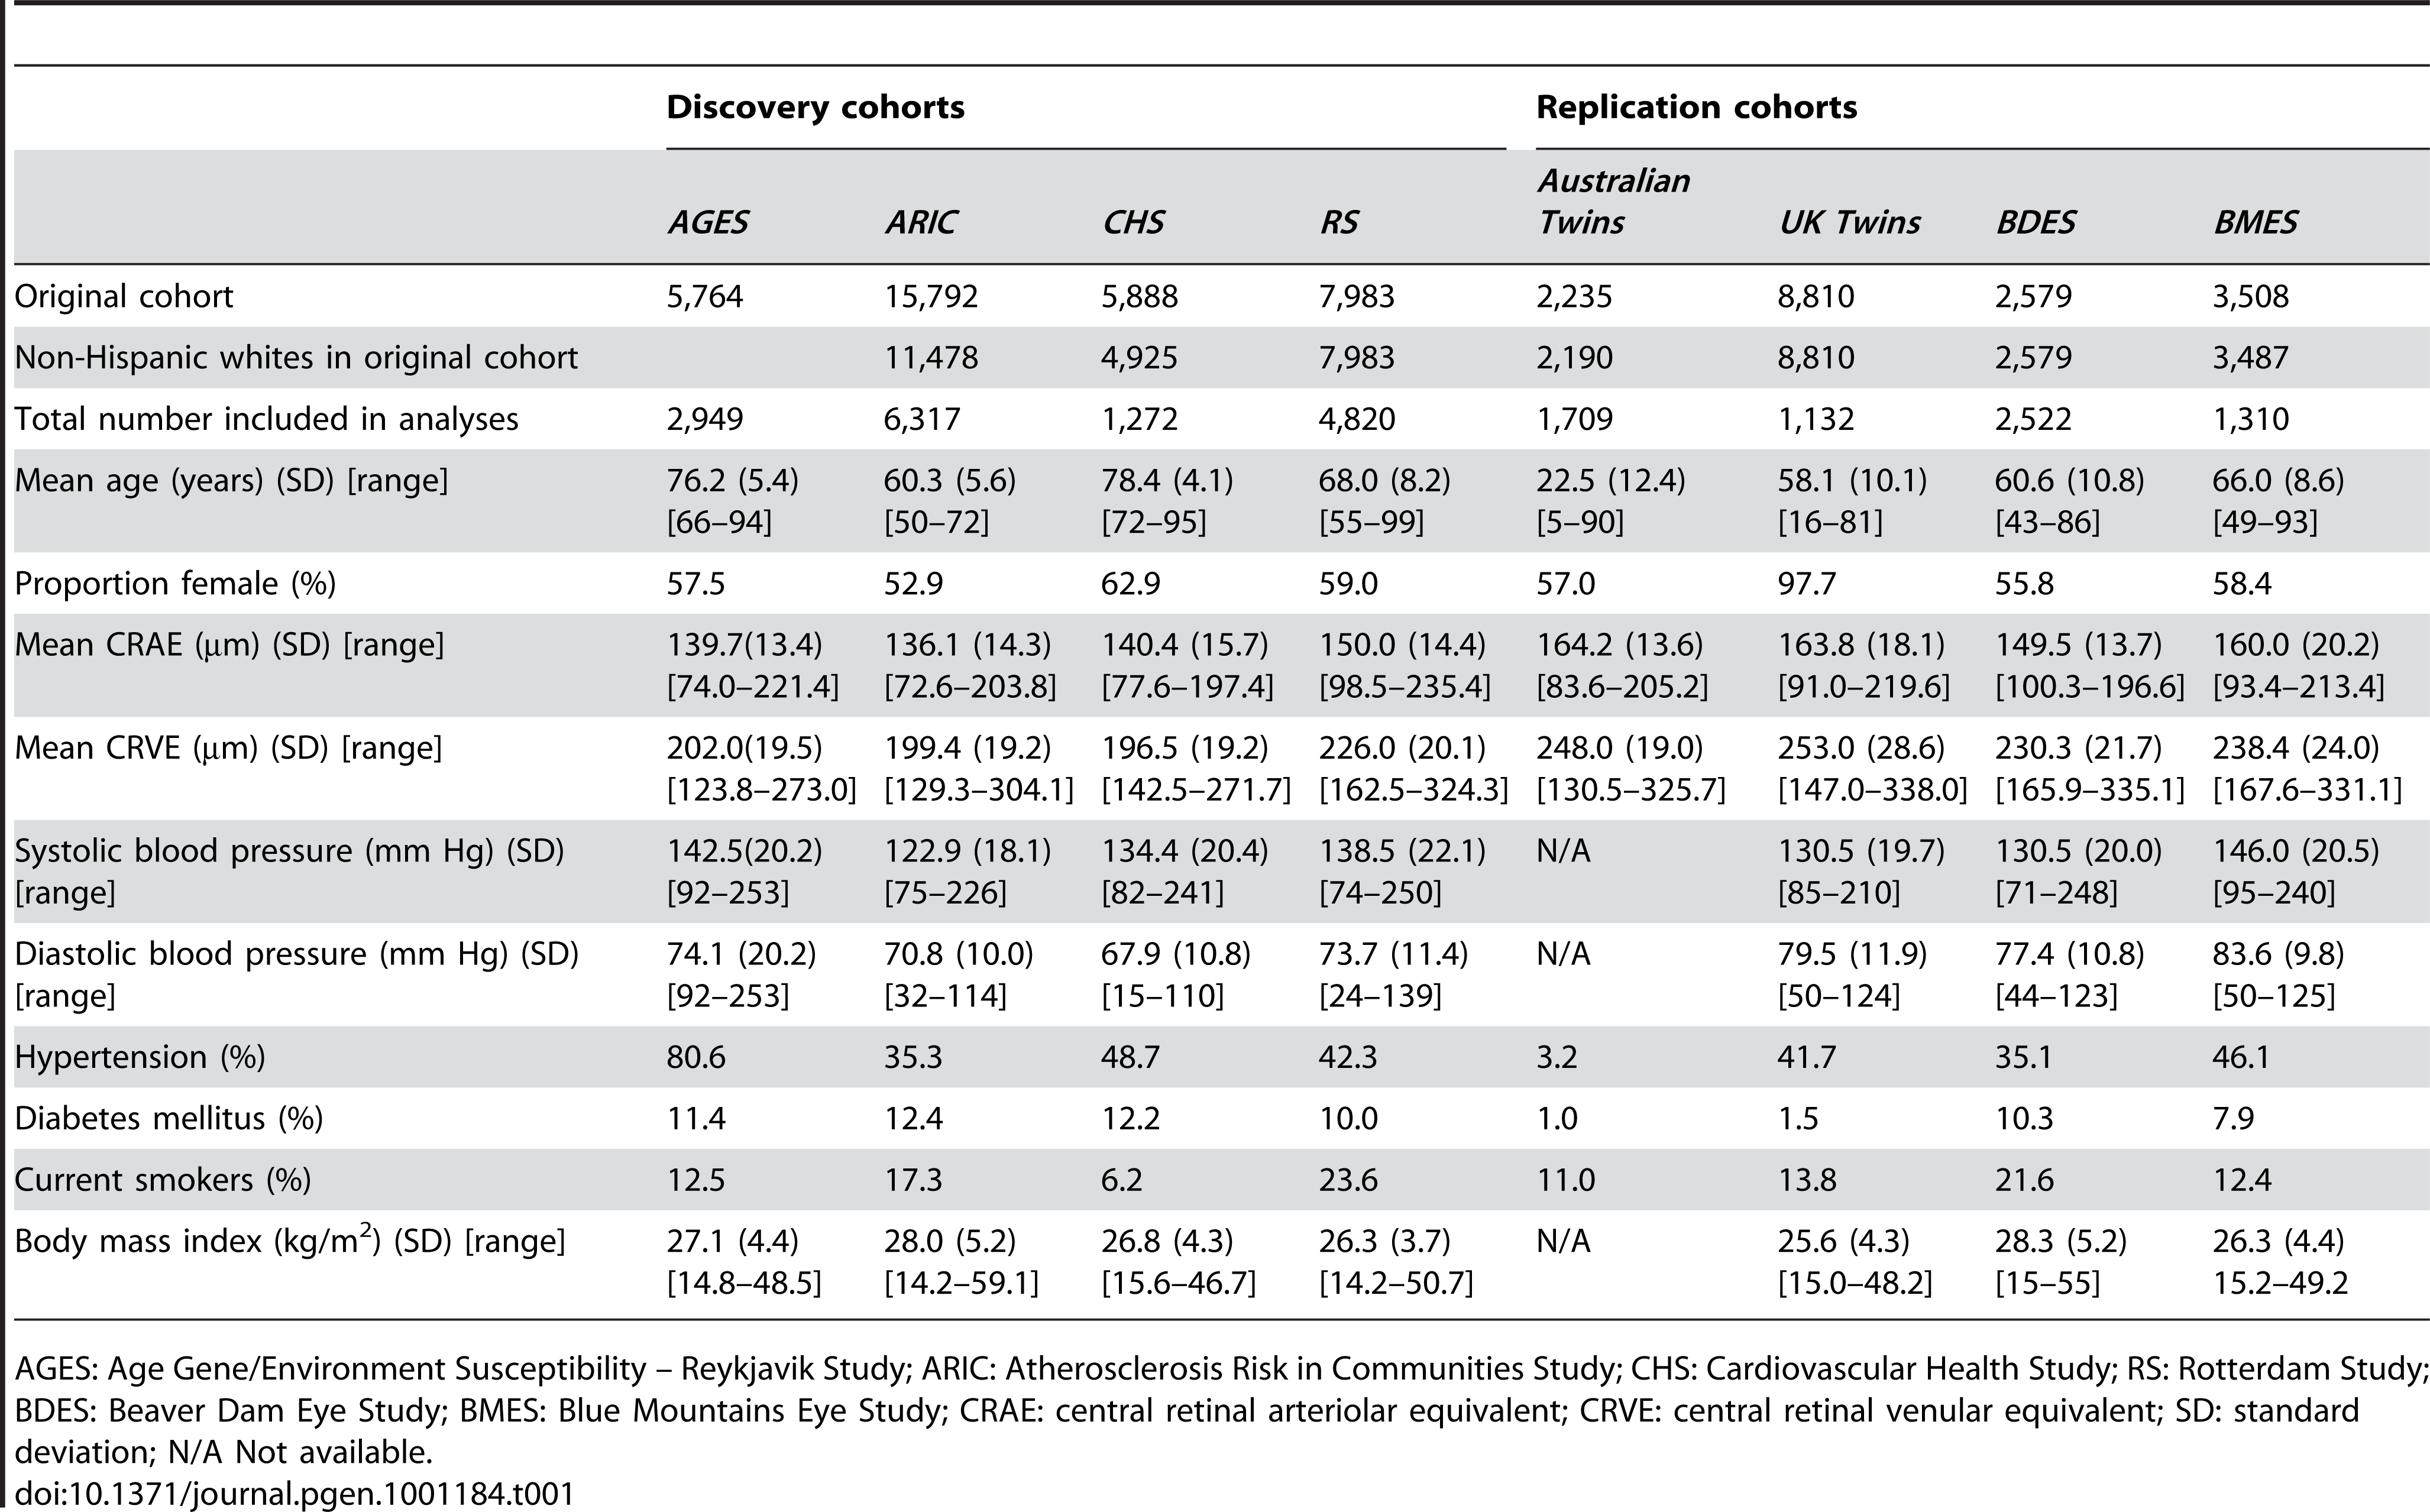 Baseline characteristics of both the discovery and replication cohorts.